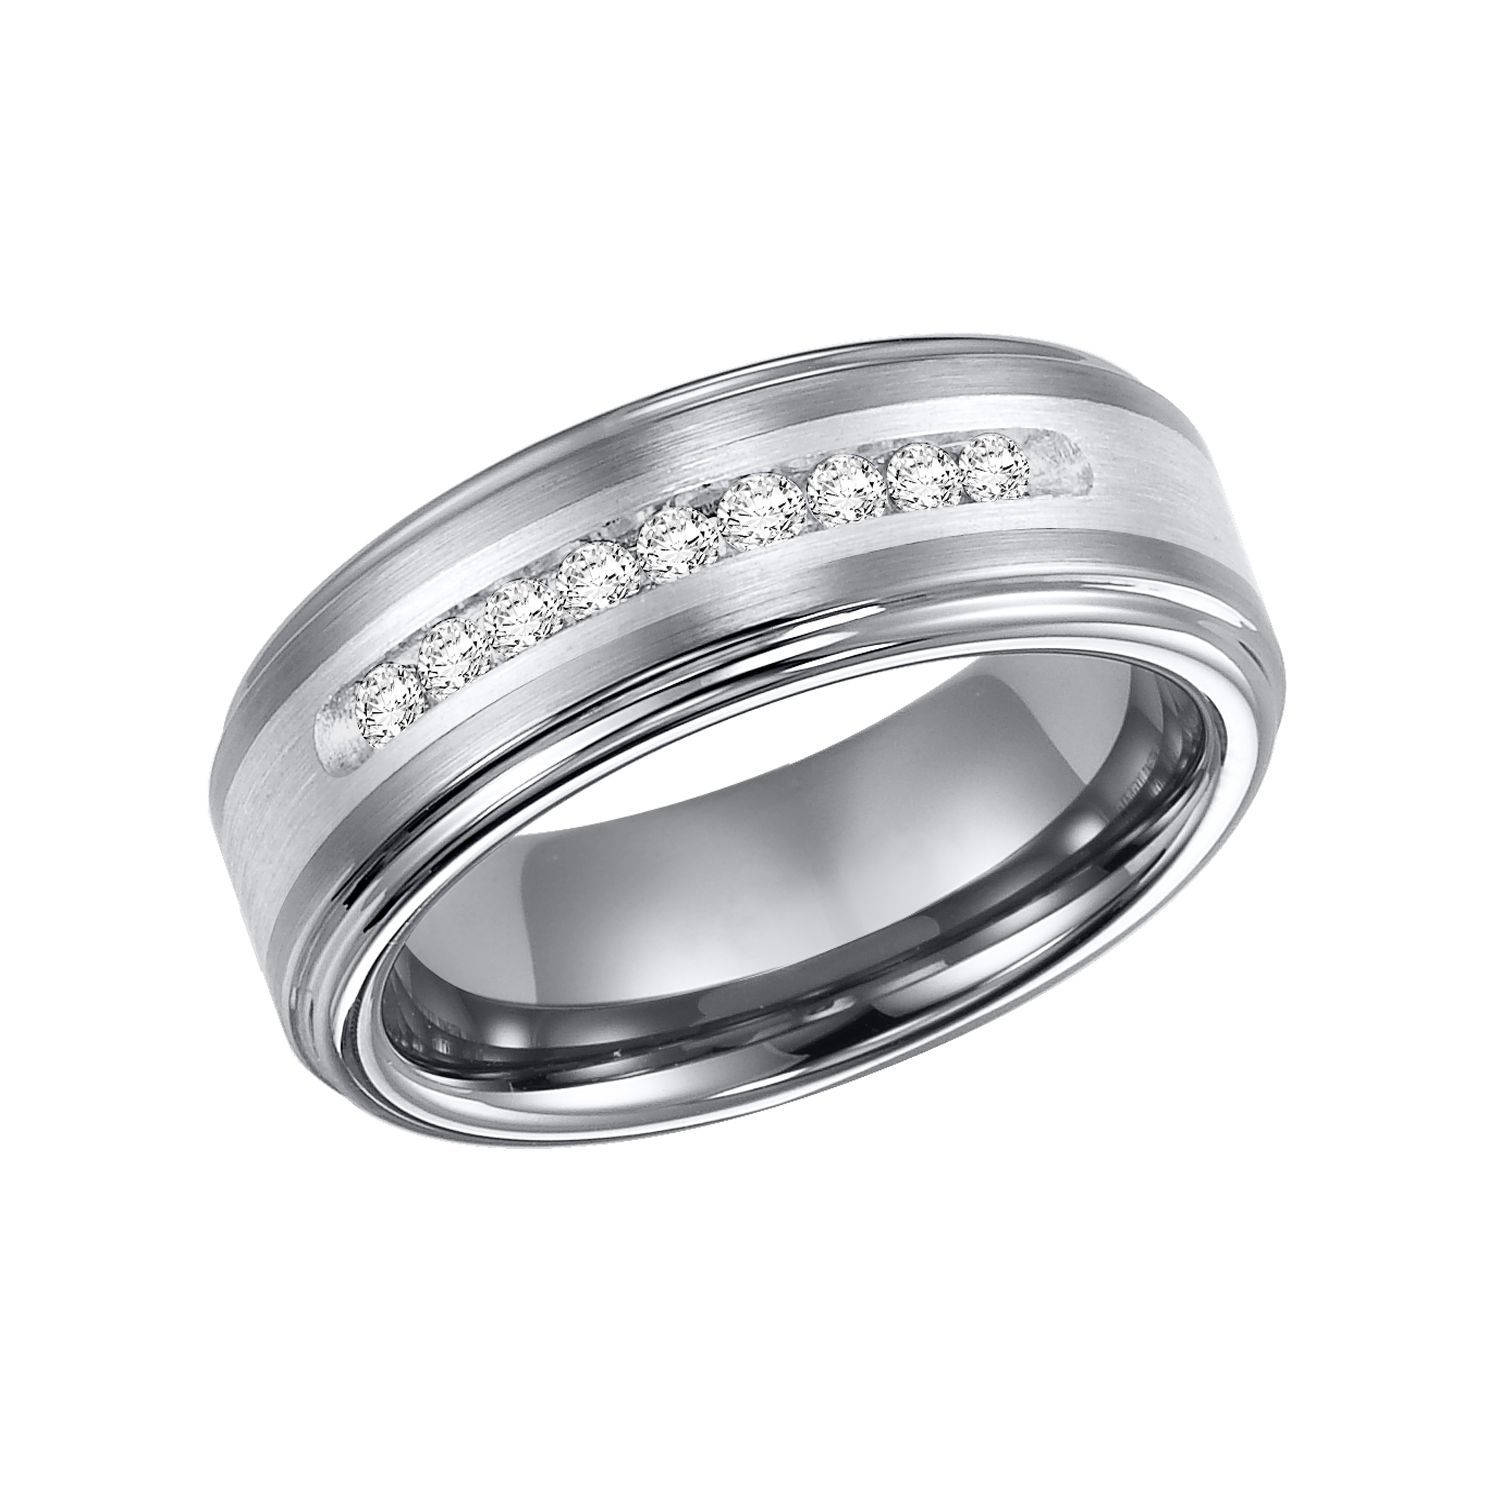 23 Ct T W Tungsten Silver Band H I I1 With Images Mens